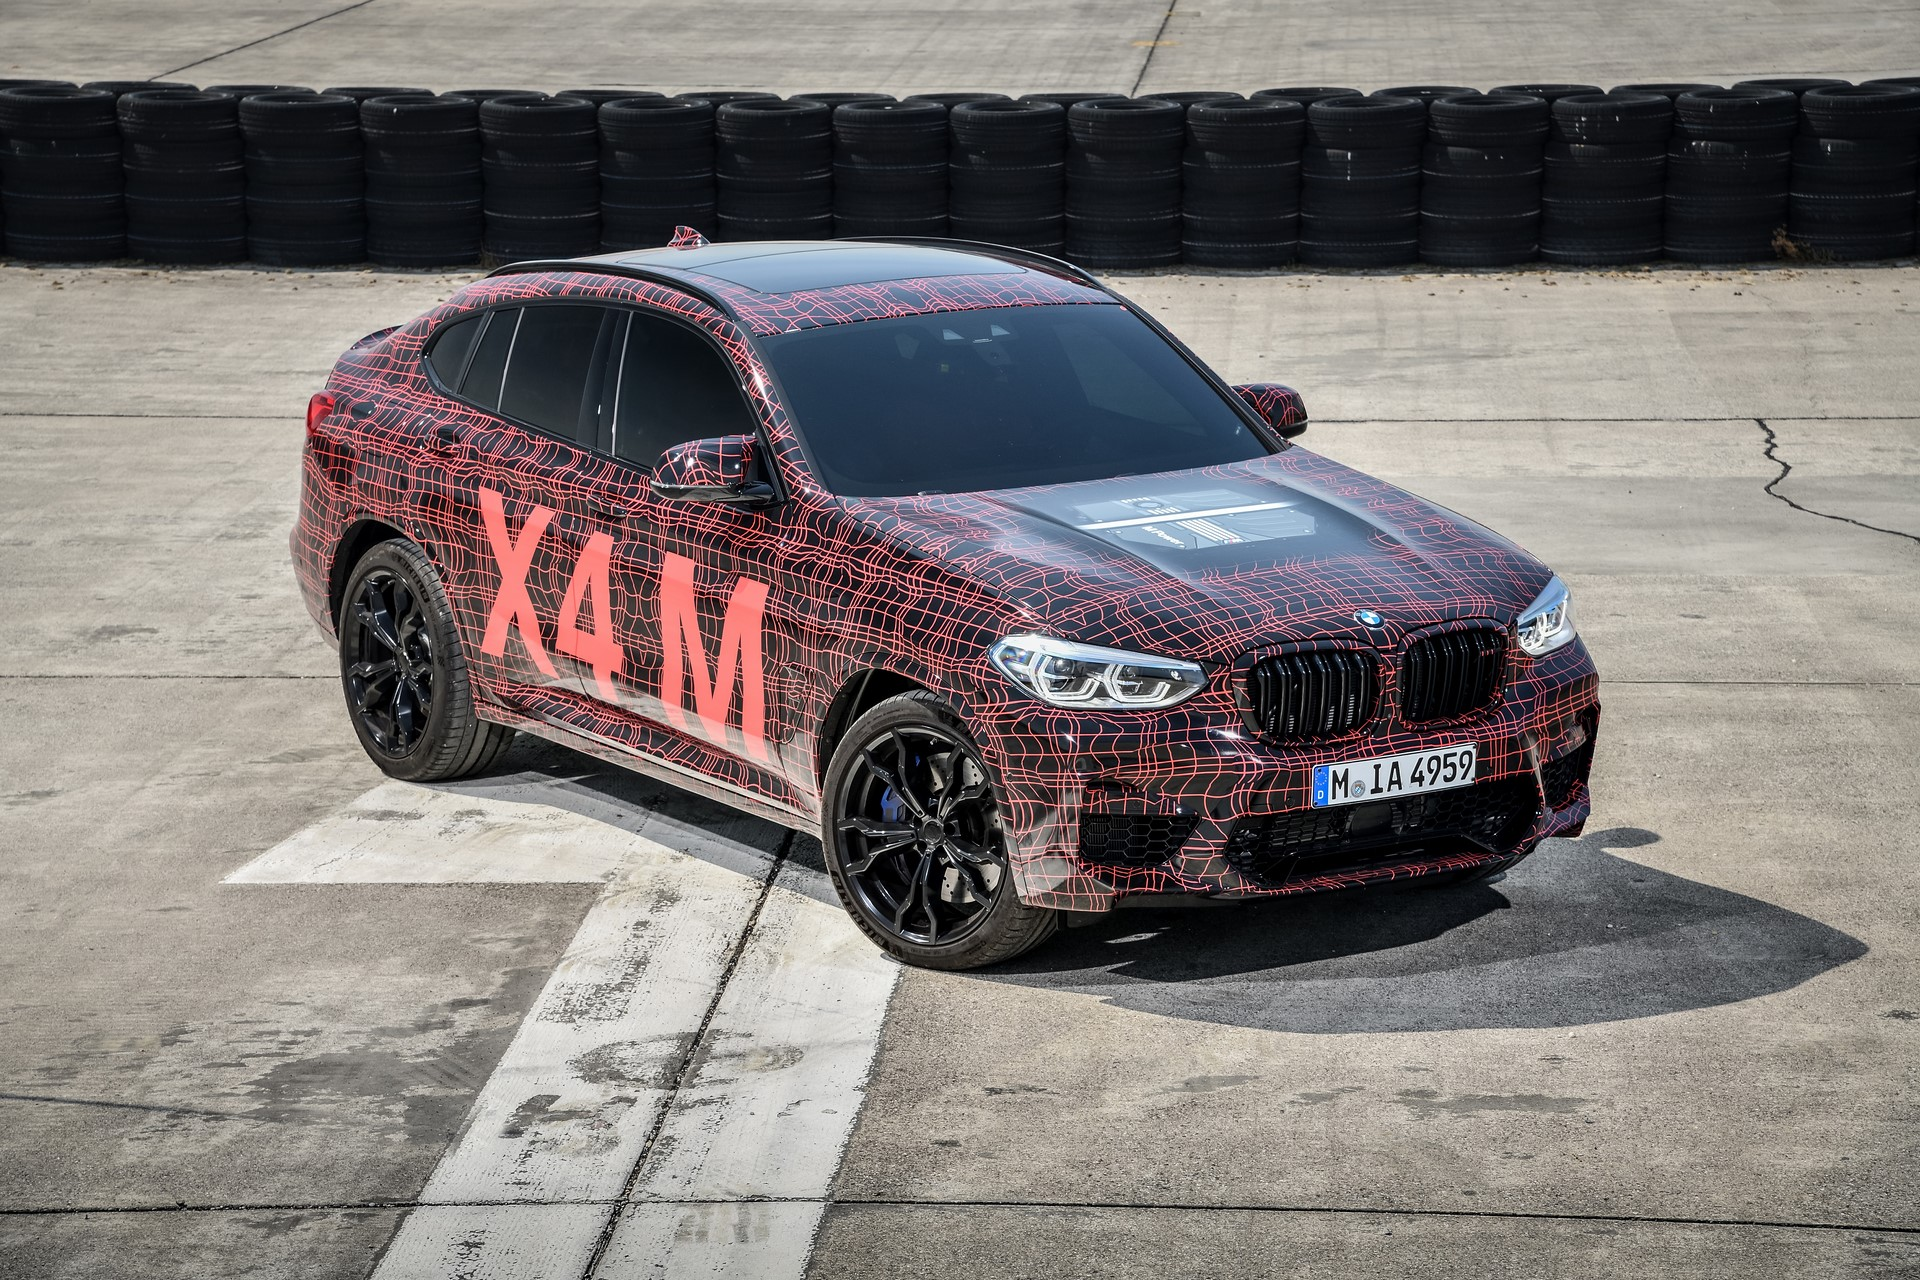 BMW X3 M and BMW X4 M at Nurburgring (20)